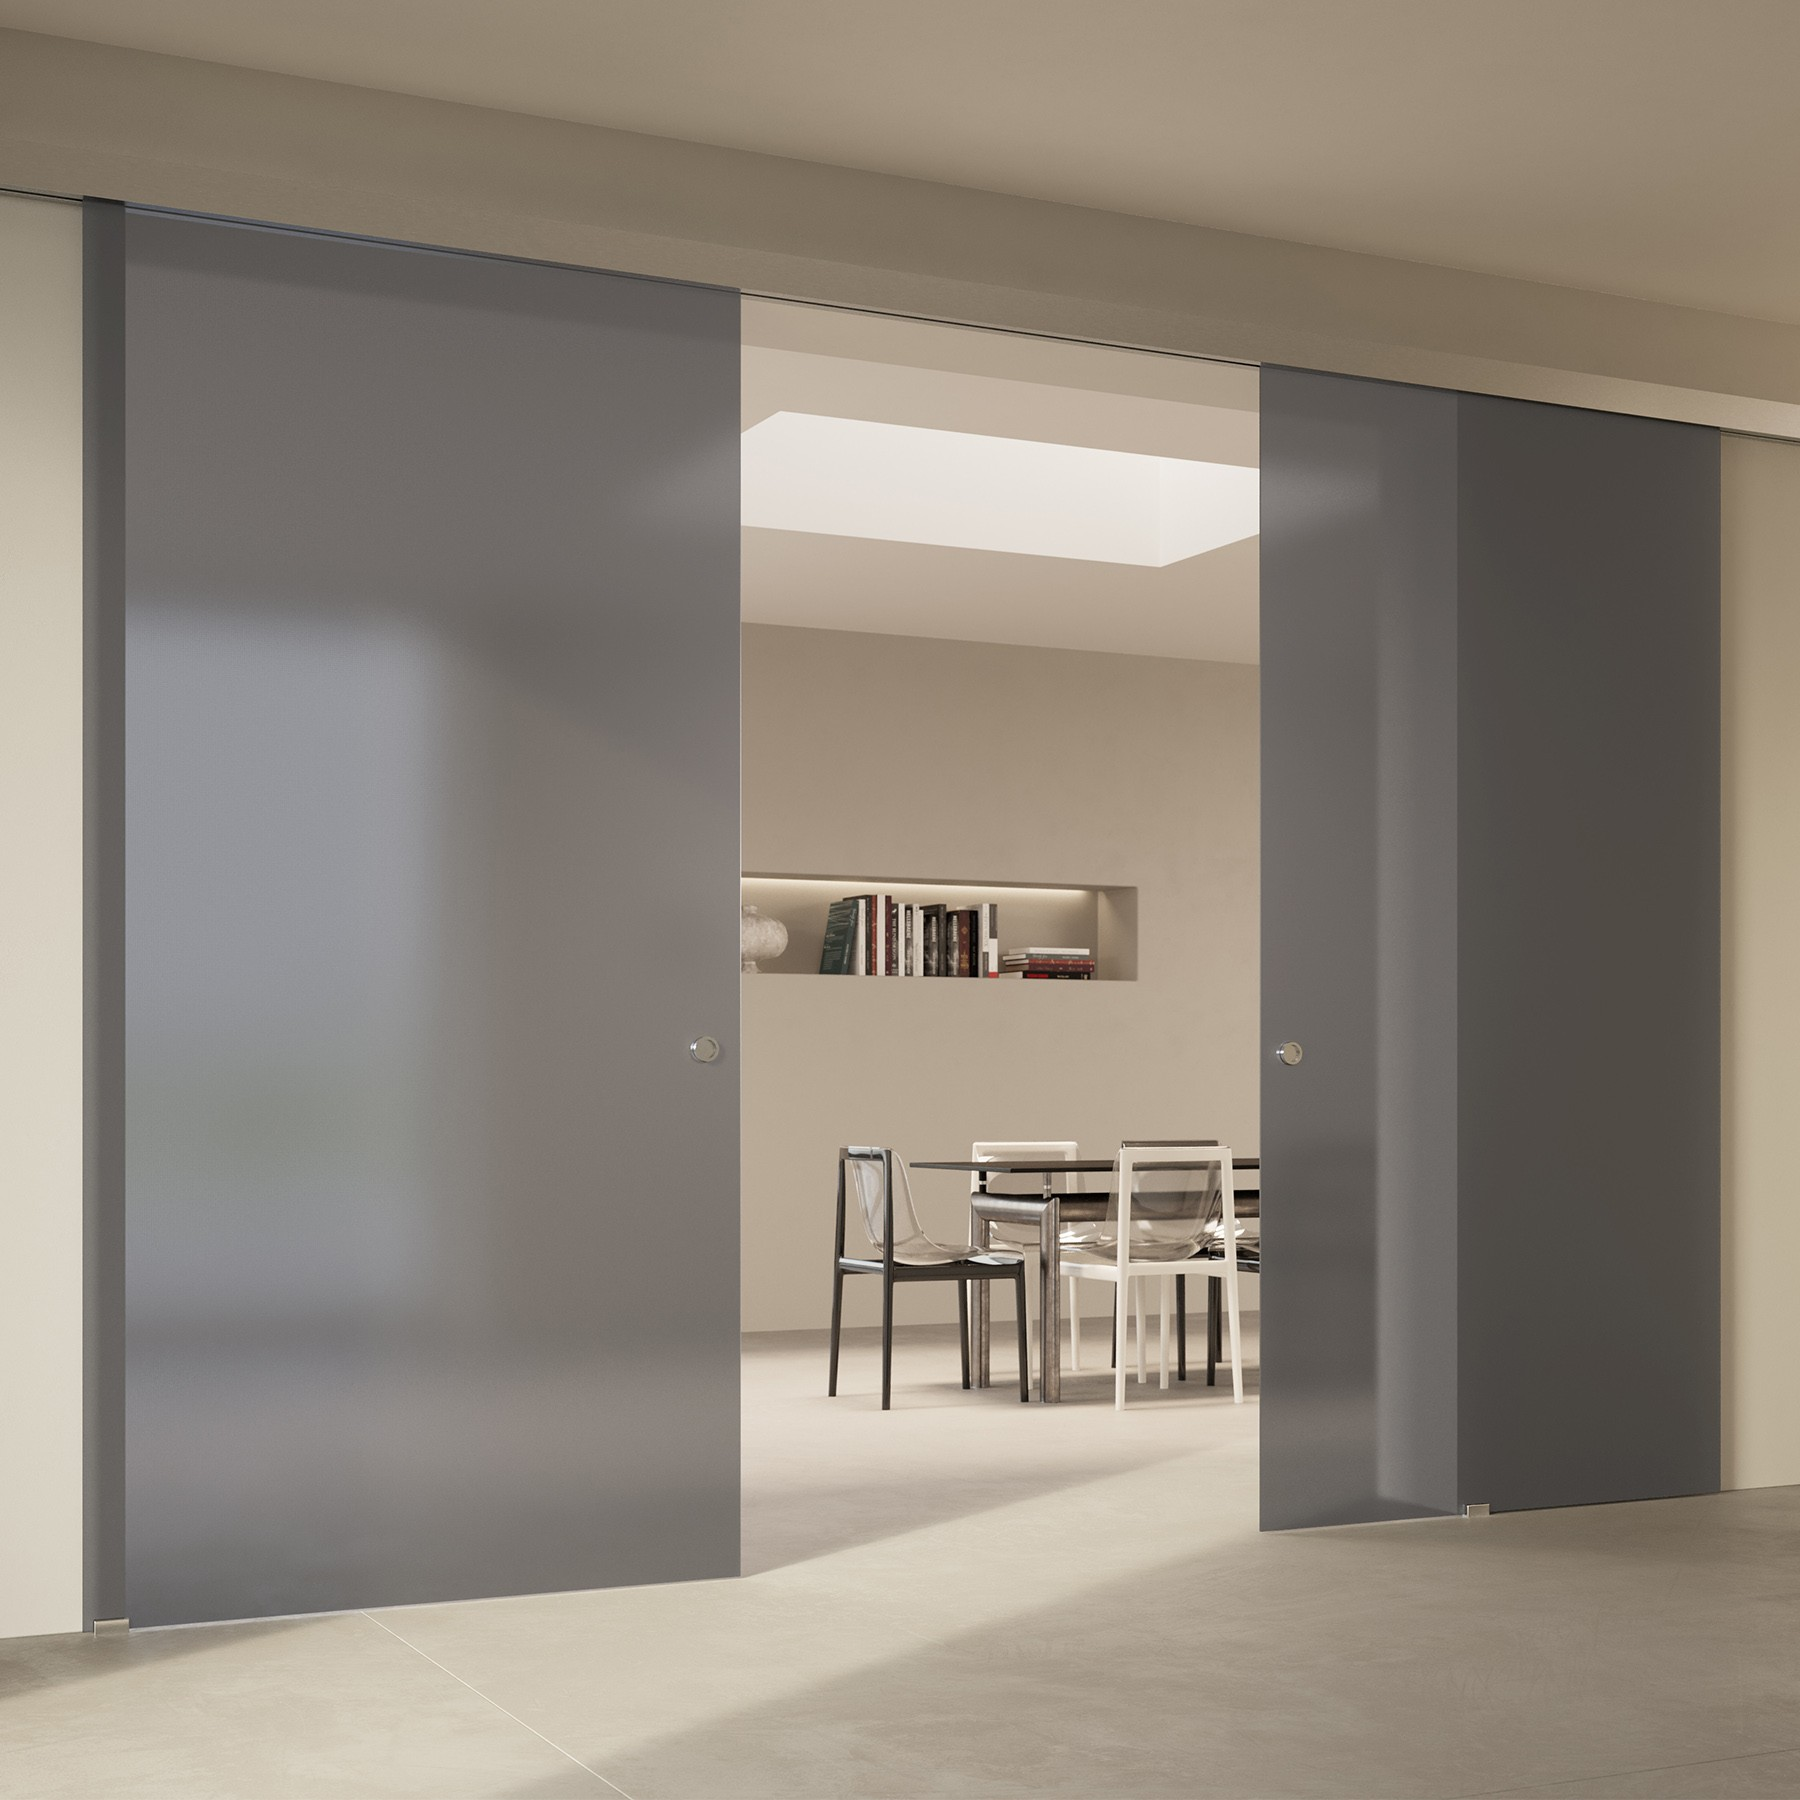 Scenario Visio with Point frosted grigio glass